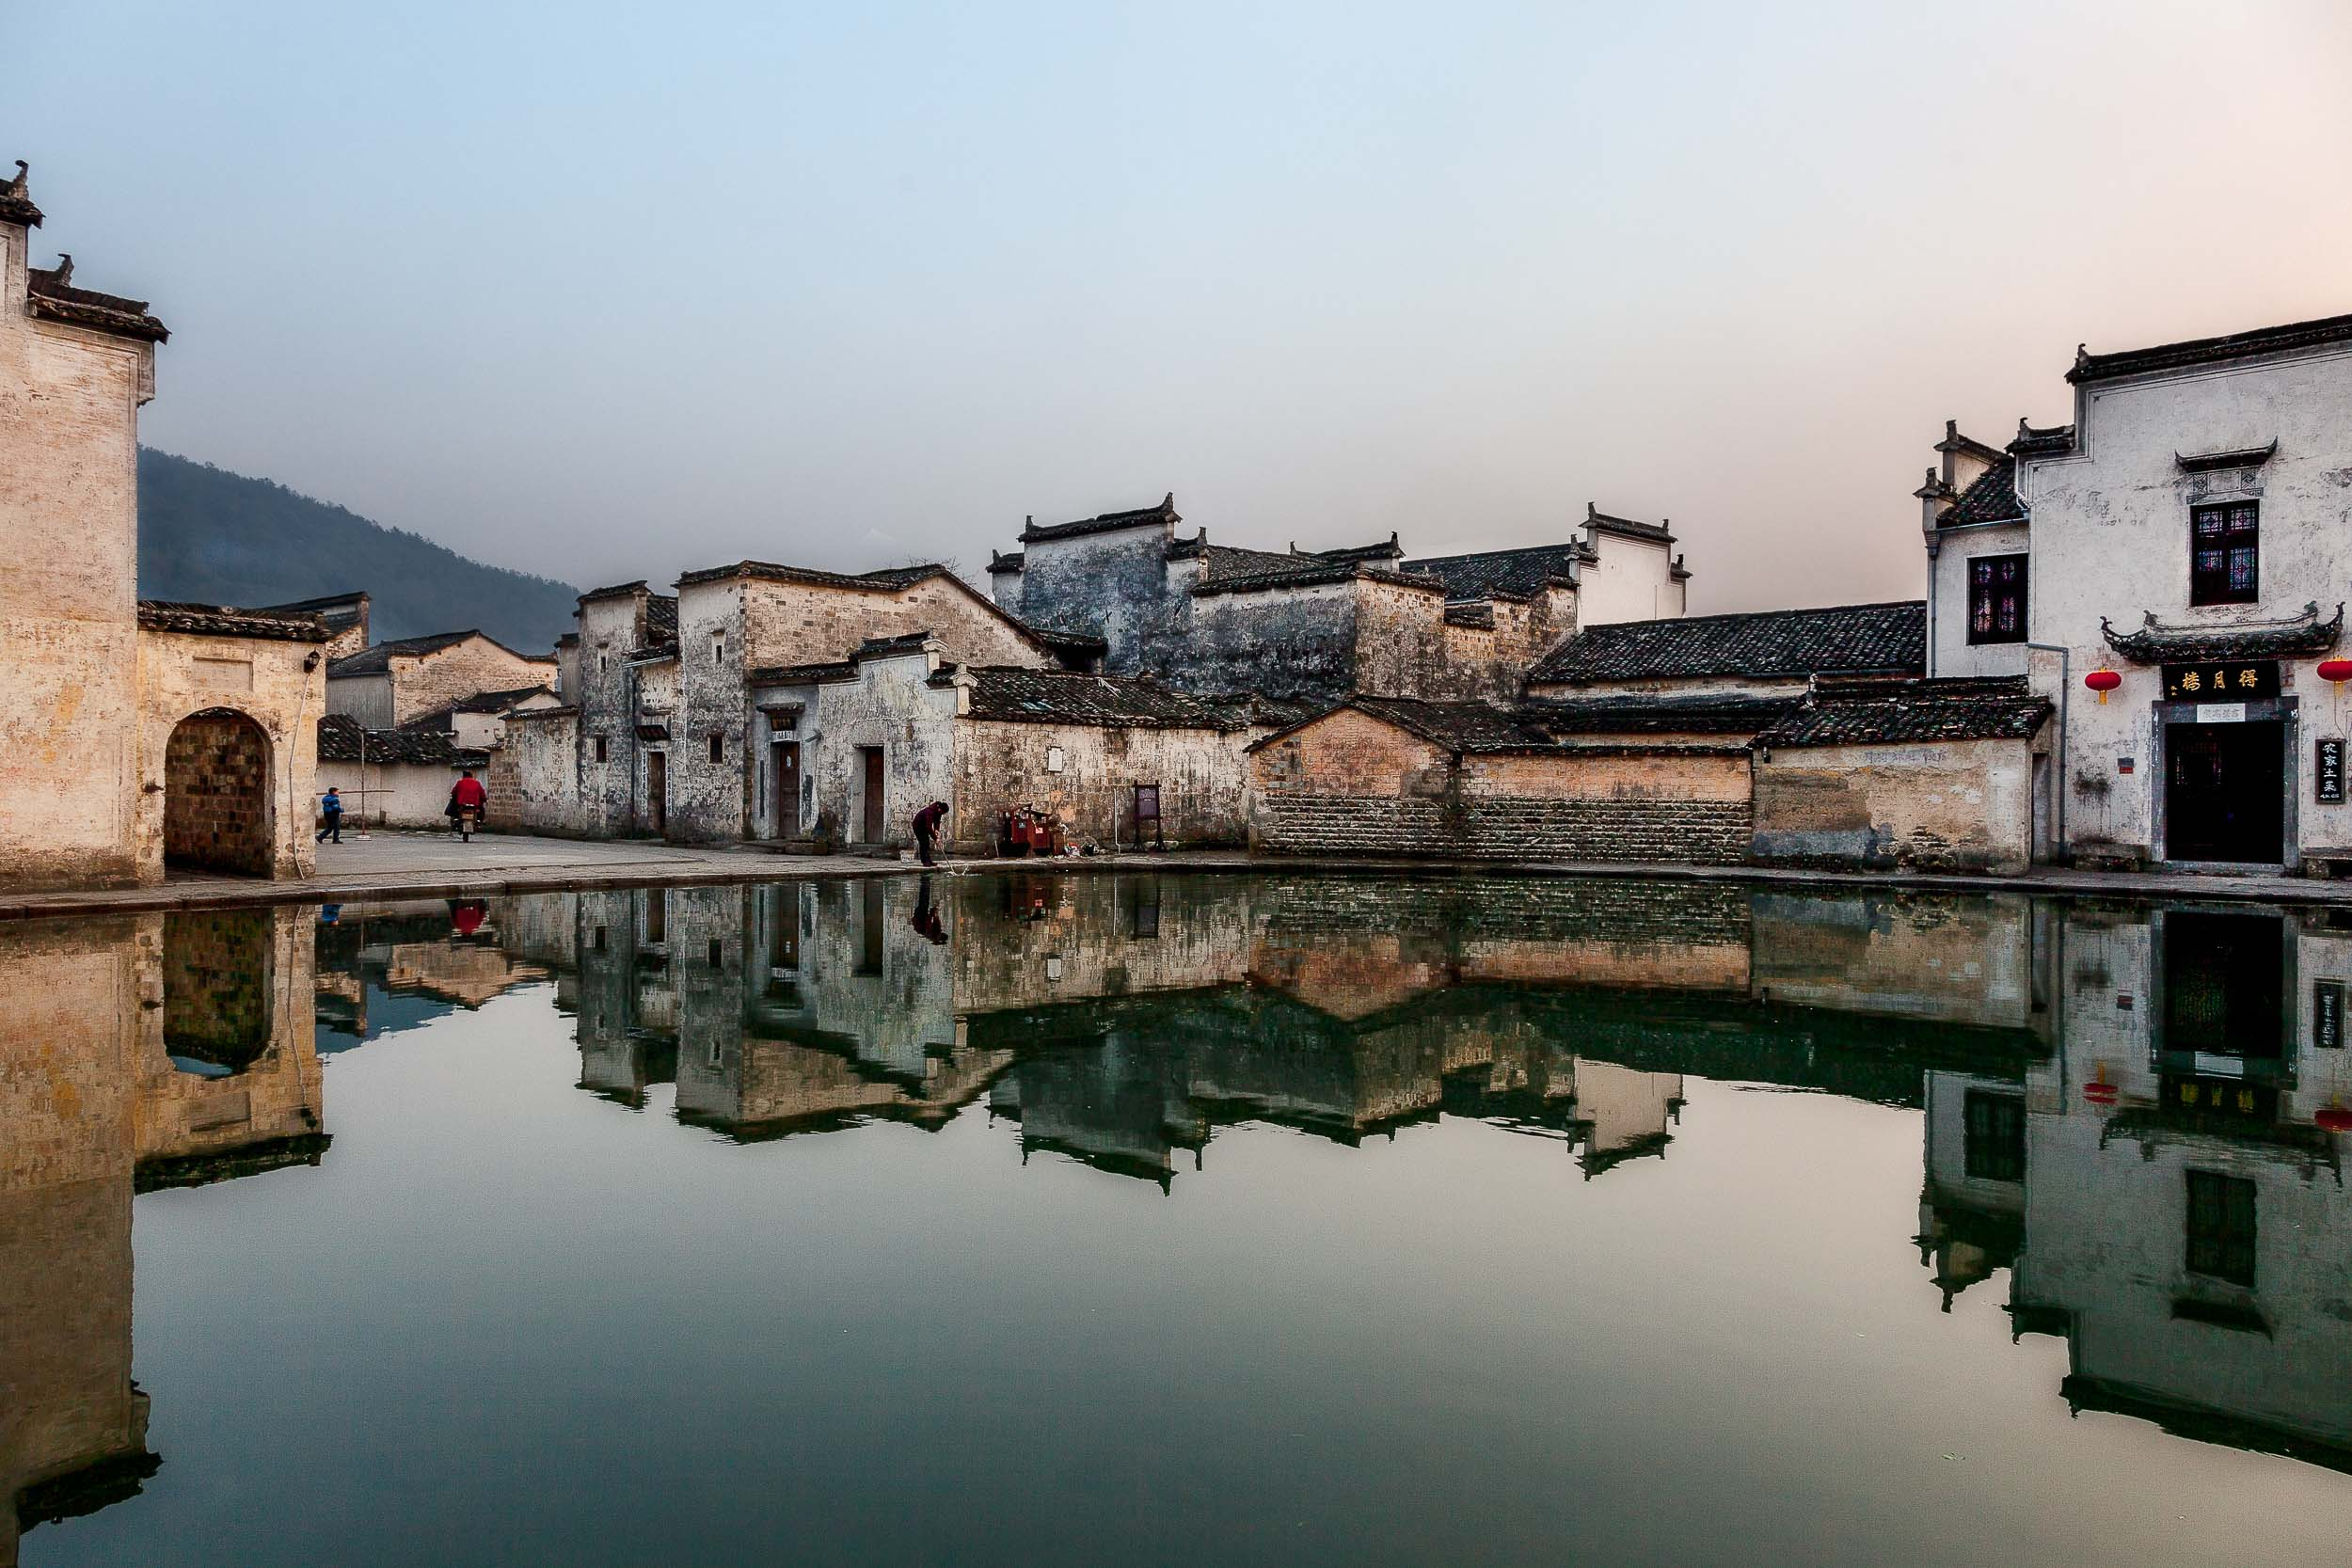 Buildings reflected    into a    pond at dusk    in the famous    Hongcun Village    in Anhui Province,    China   .